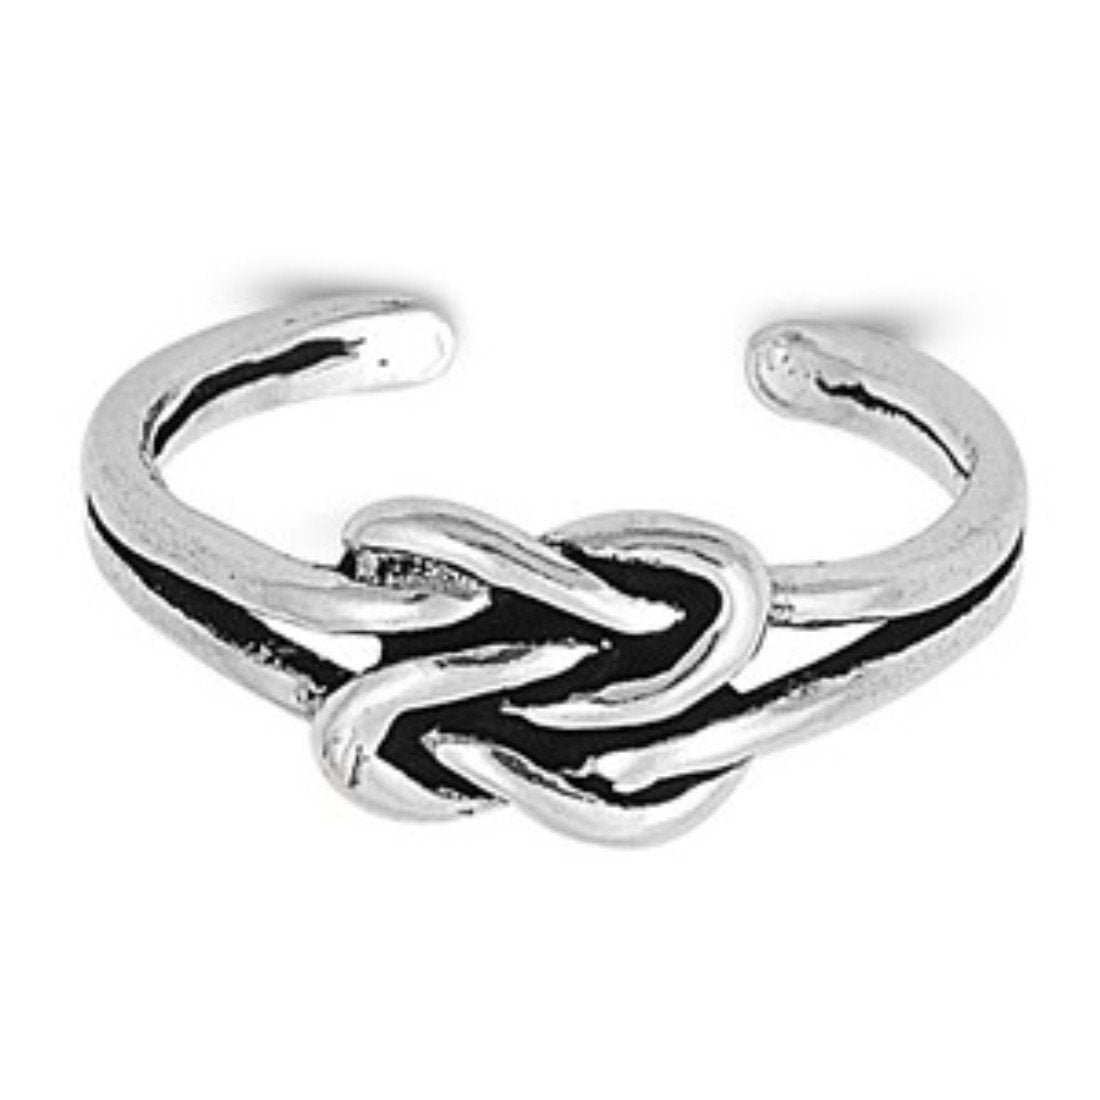 Adjustable Silver Toe Ring Band 925 Sterling Silver (6mm)